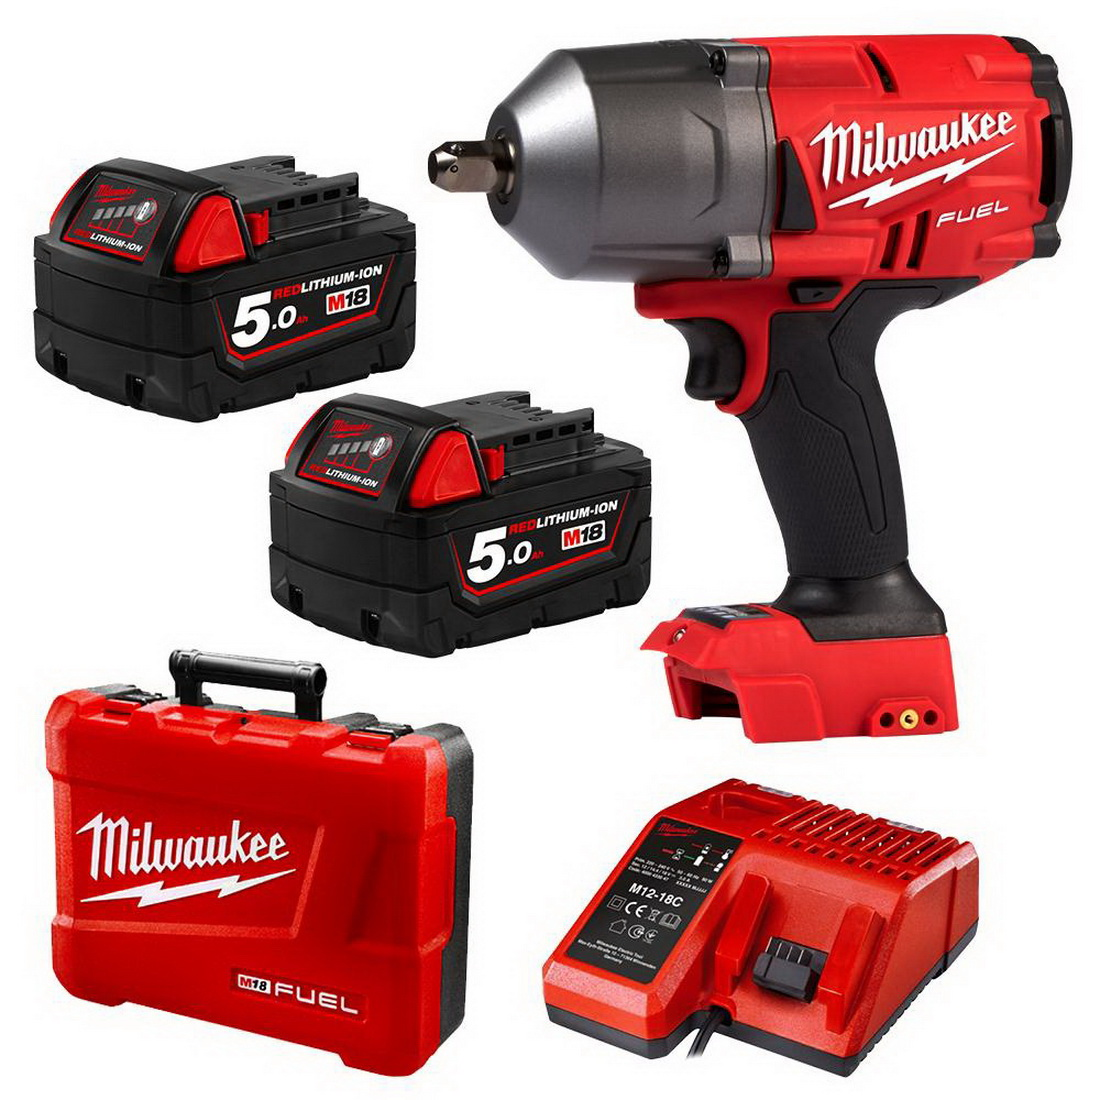 M18 FUEL Li-Ion Cordless High Torque Impact Wrench Kit with Pin Detent 18V 5AH 1/2inch 0-2400ipm M18FHIWP12-502C